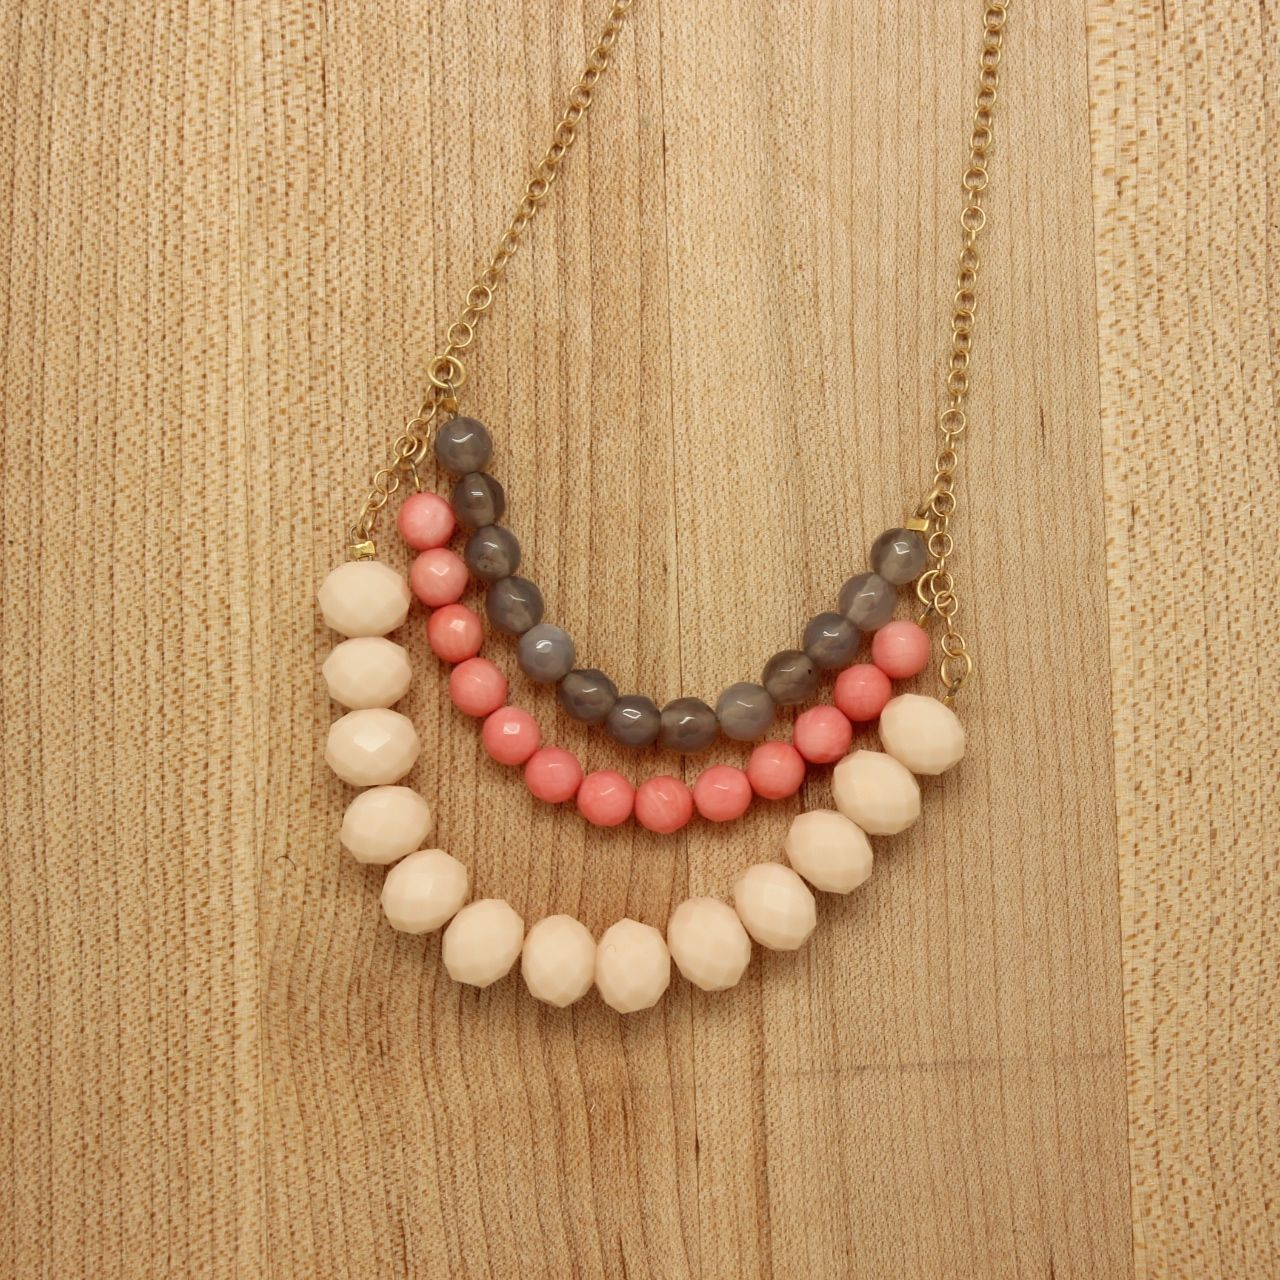 Gray agate, coral and pale pink glass three stranded necklace. Gold plate over brass chain, measuring 18″ with a 2″ extender chain. Handmade in Portland, Oregon.